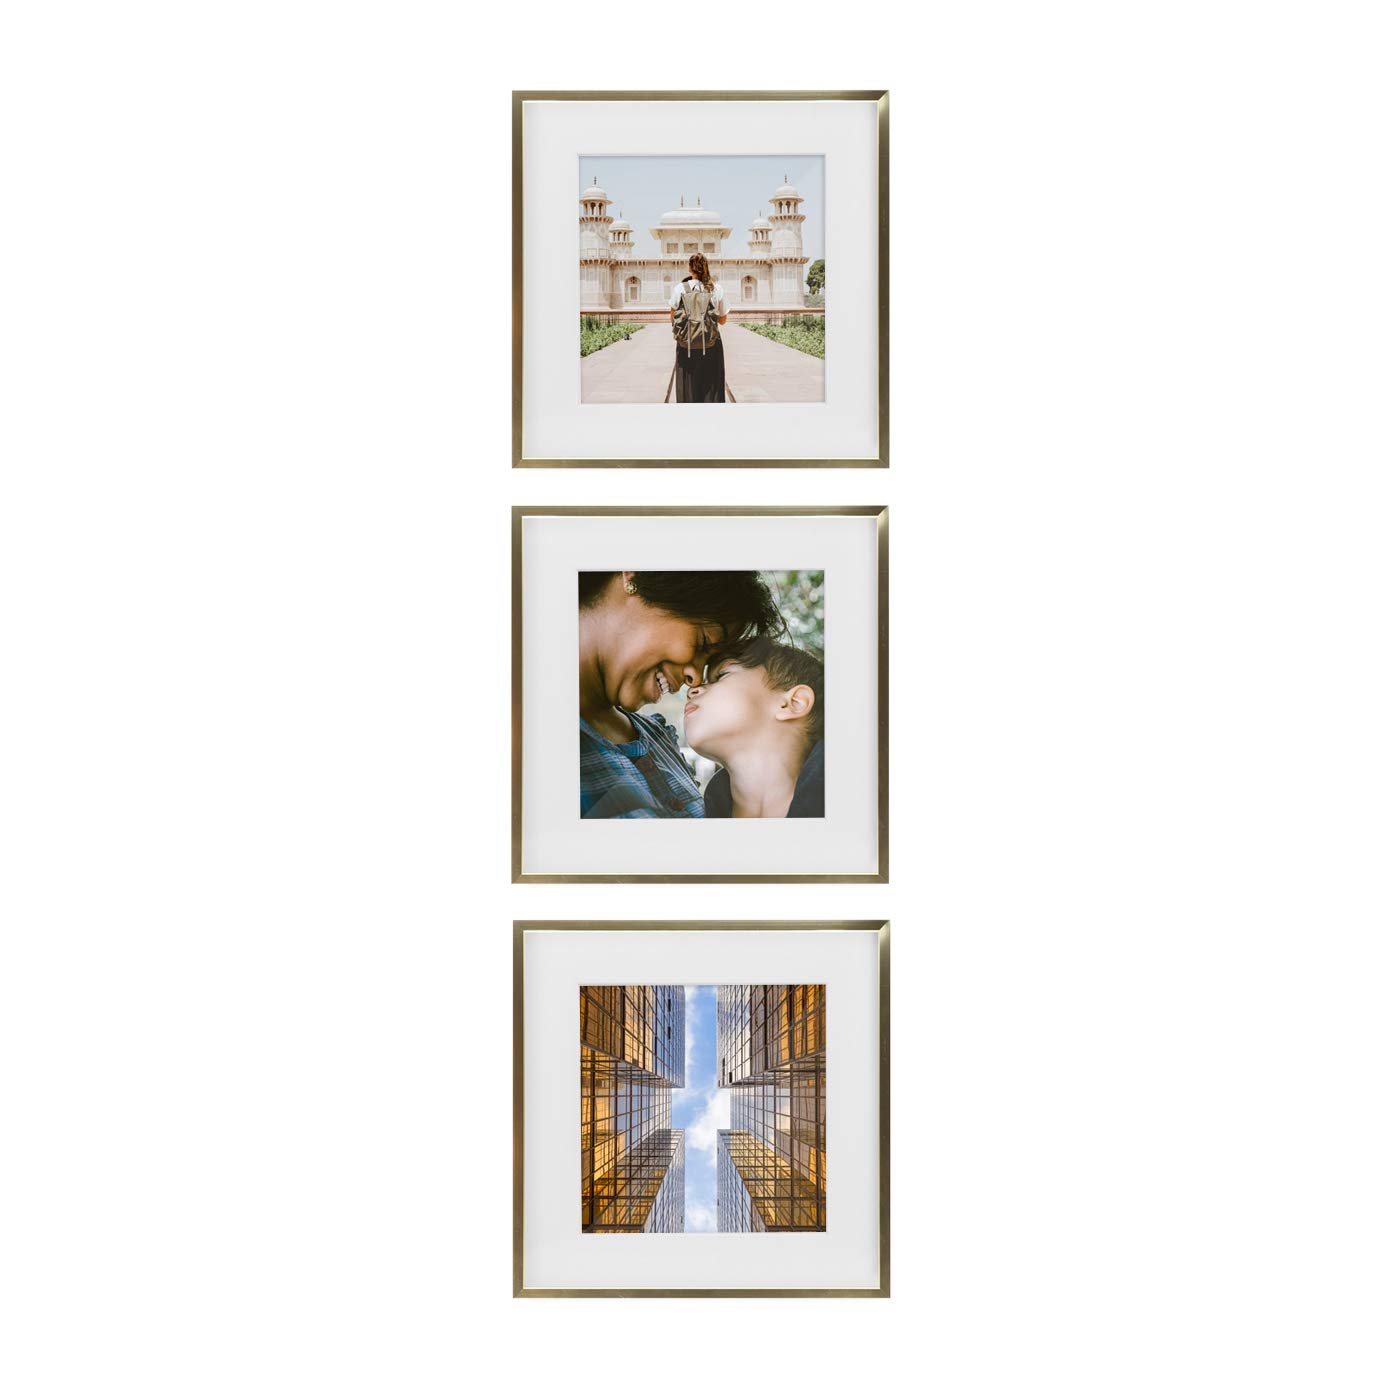 Tiny Mighty Frames - Gold Metal Square Photo Frame, 11x11 (8x8 Matted) (3, Gold) by Tiny Mighty Frames